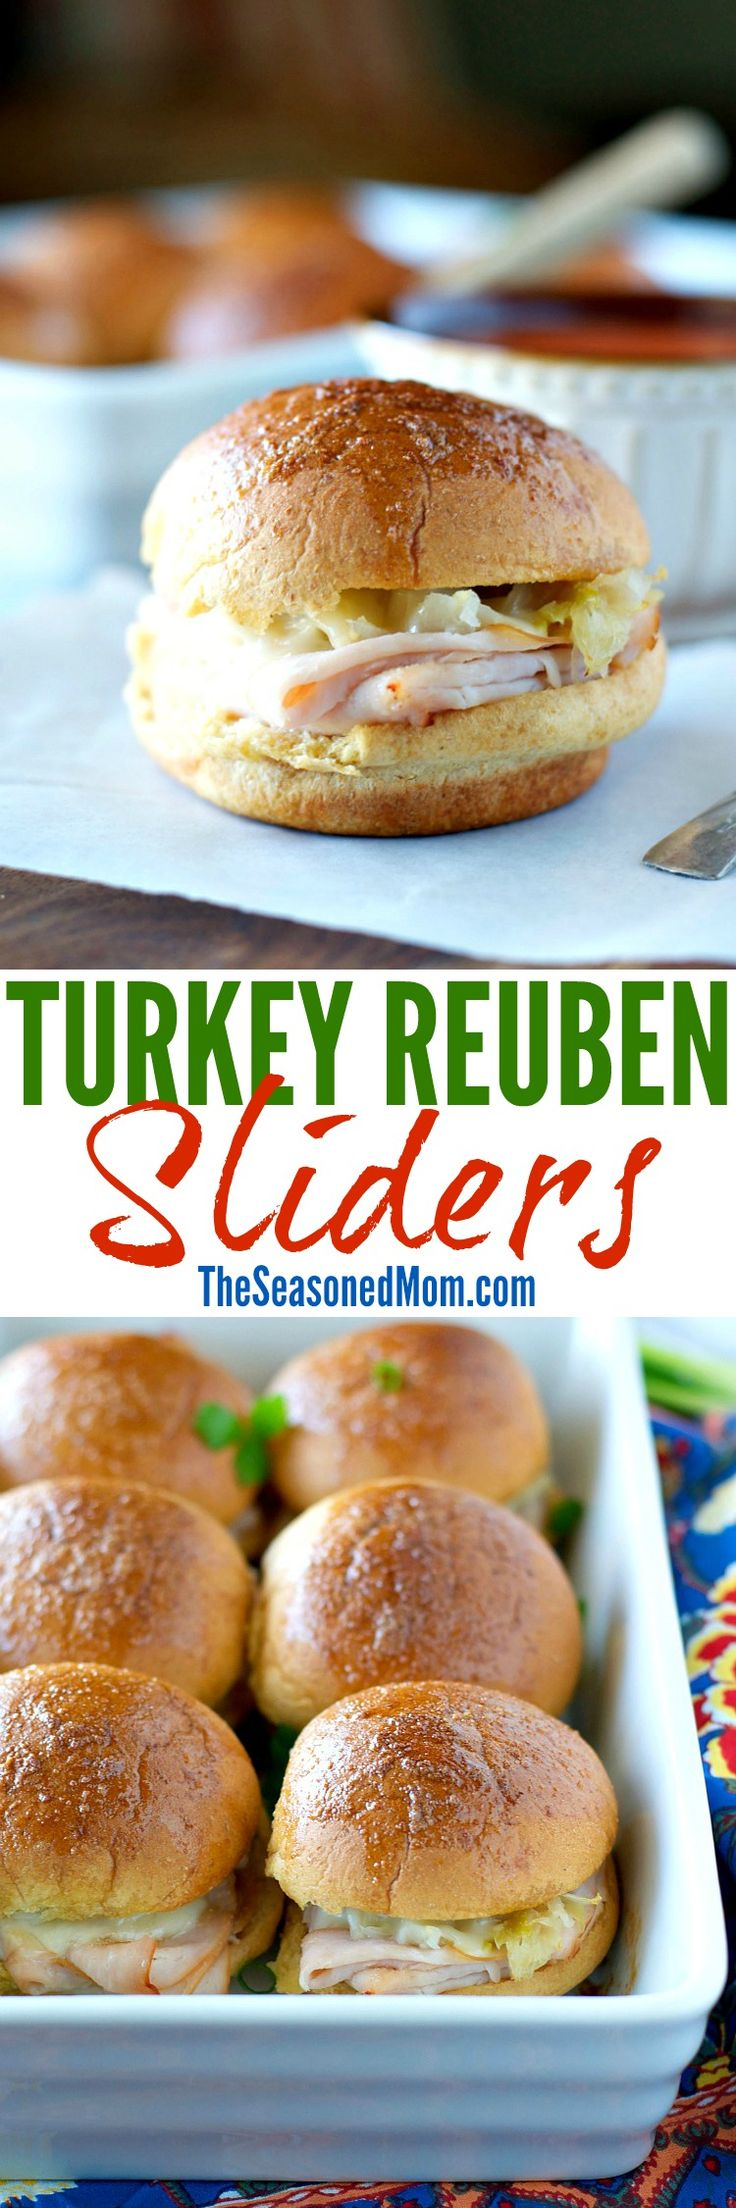 These baked Turkey Reuben Sliders are crowd-pleasing party appetizers or an easy weeknight dinner! Nobody can resist the buttery wholewheat roll that is stuffed with plenty of slow roasted turkey, warm and gooey Swiss cheese, sauerkraut, and a better-for-you Thousand Island dressing! #OscarMayerNatural #ad @OscarMayer